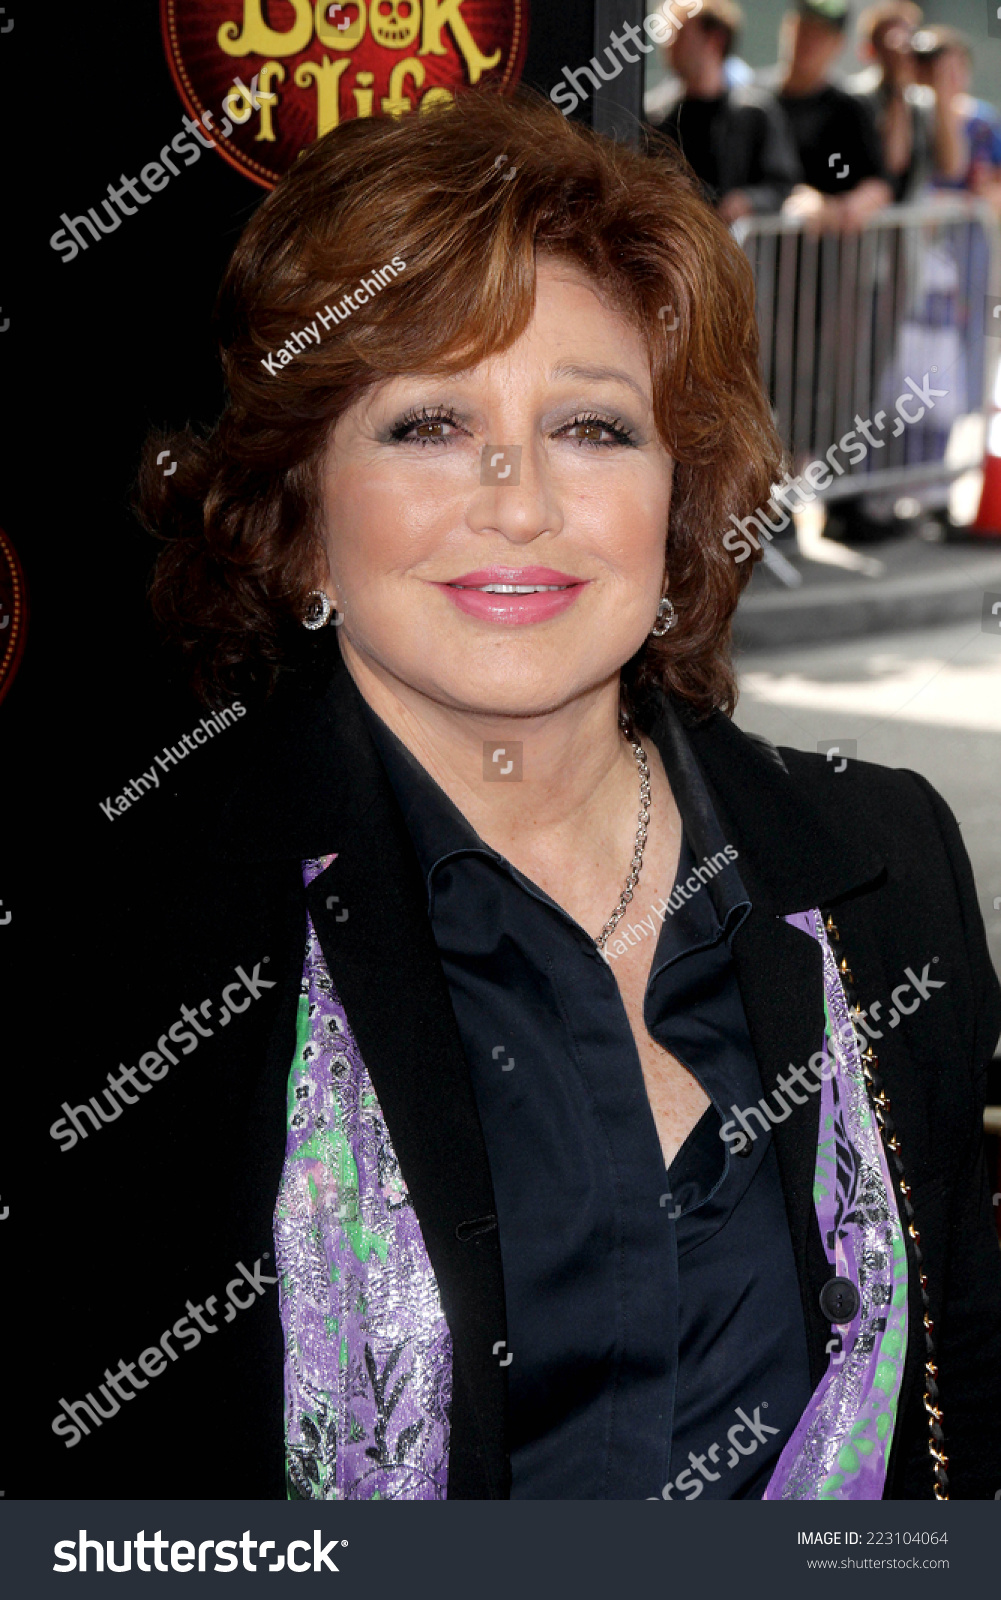 Patti LuPone images